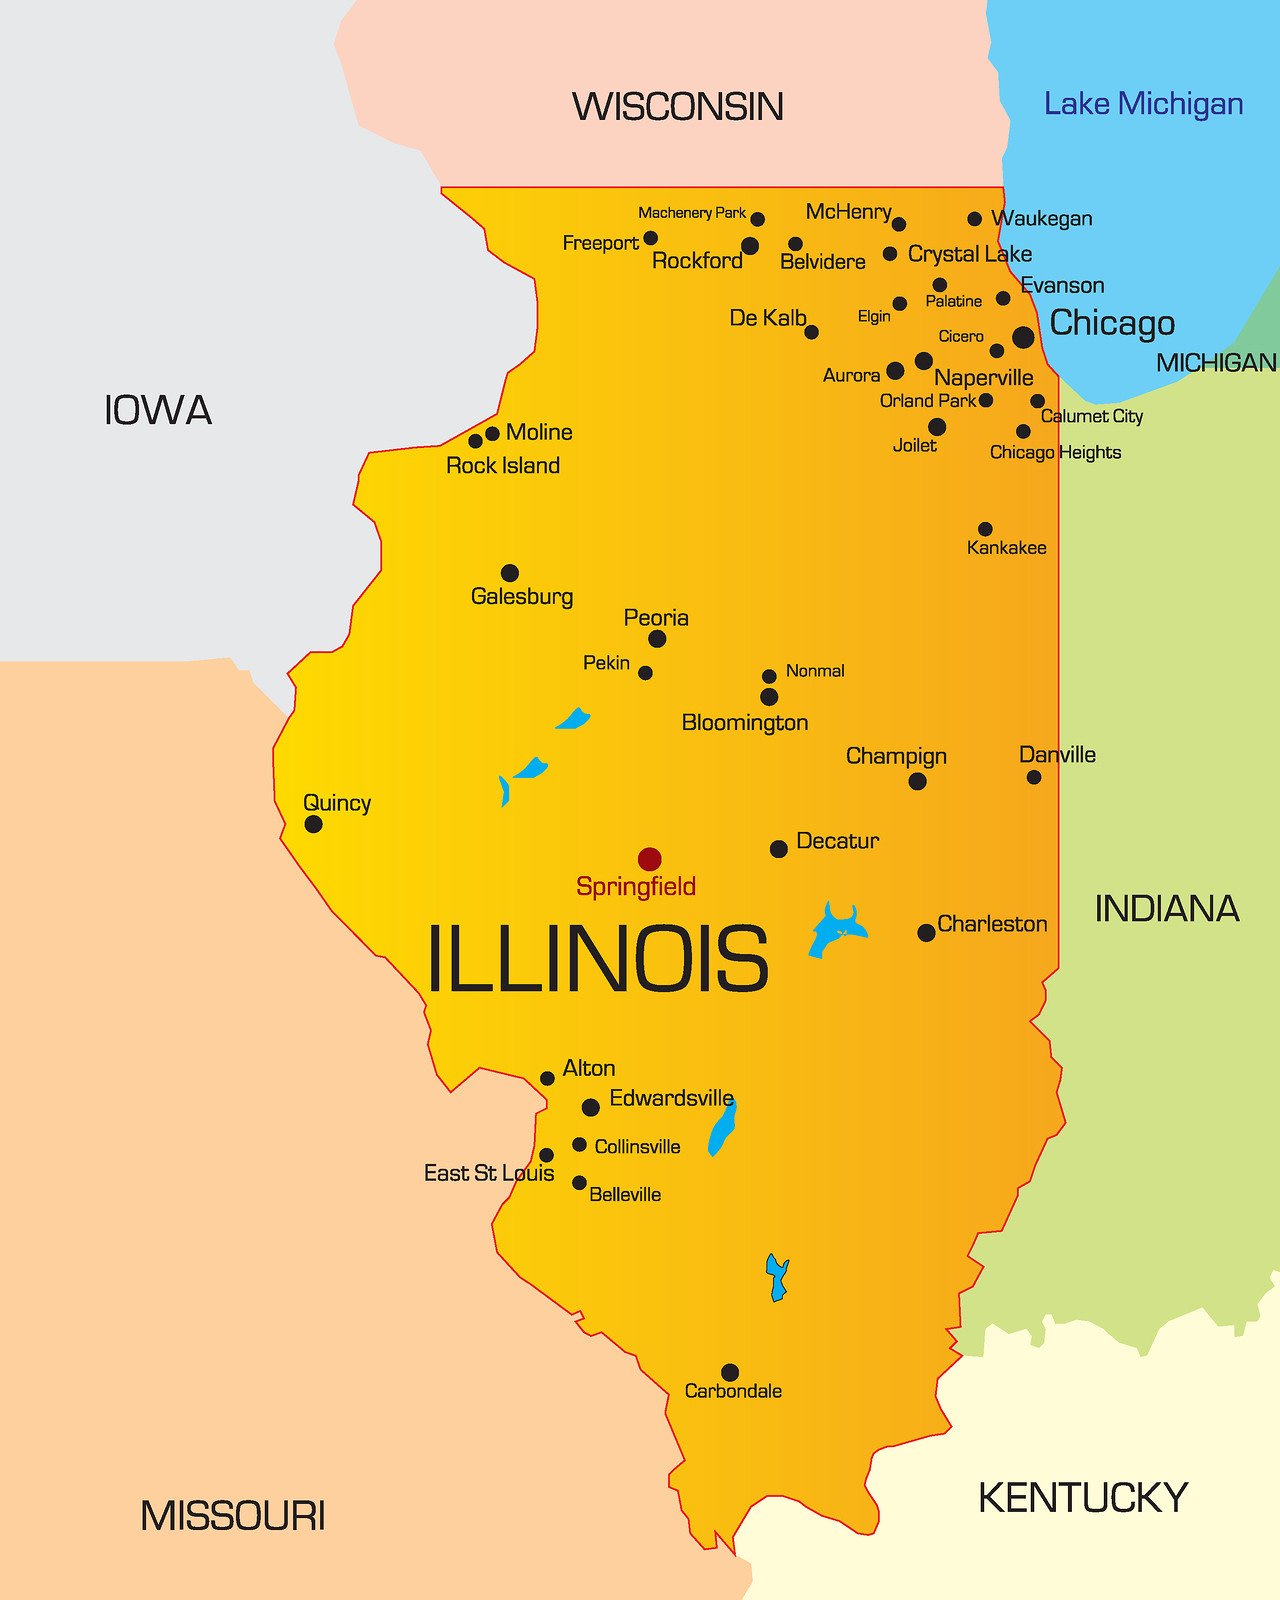 Illinois RN Requirements and Training Programs